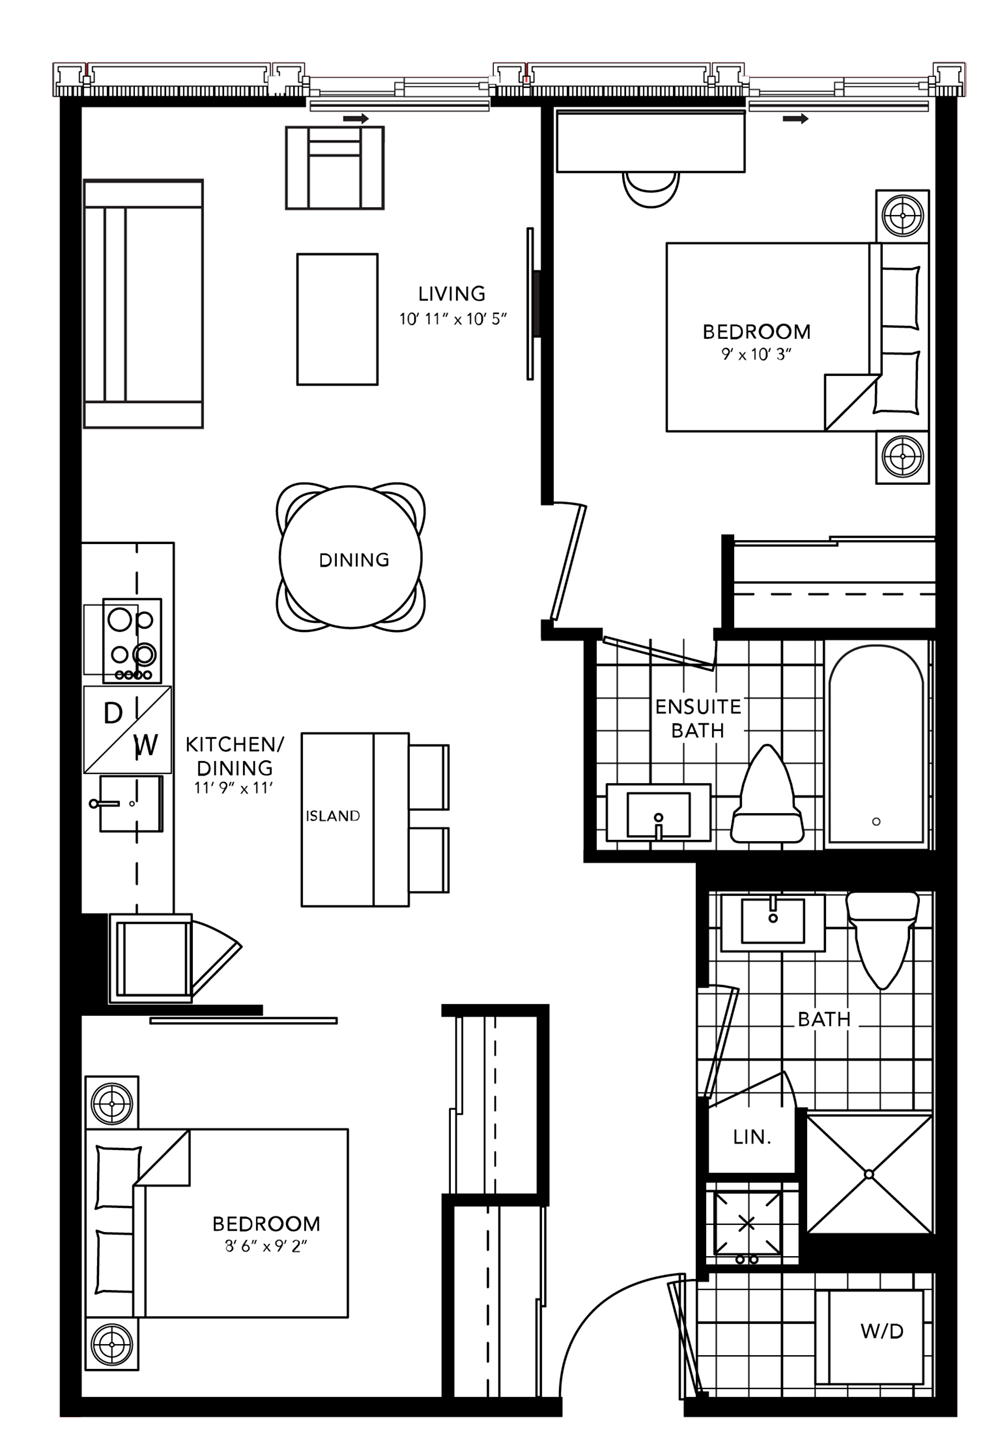 Two Bedroom Layout.png